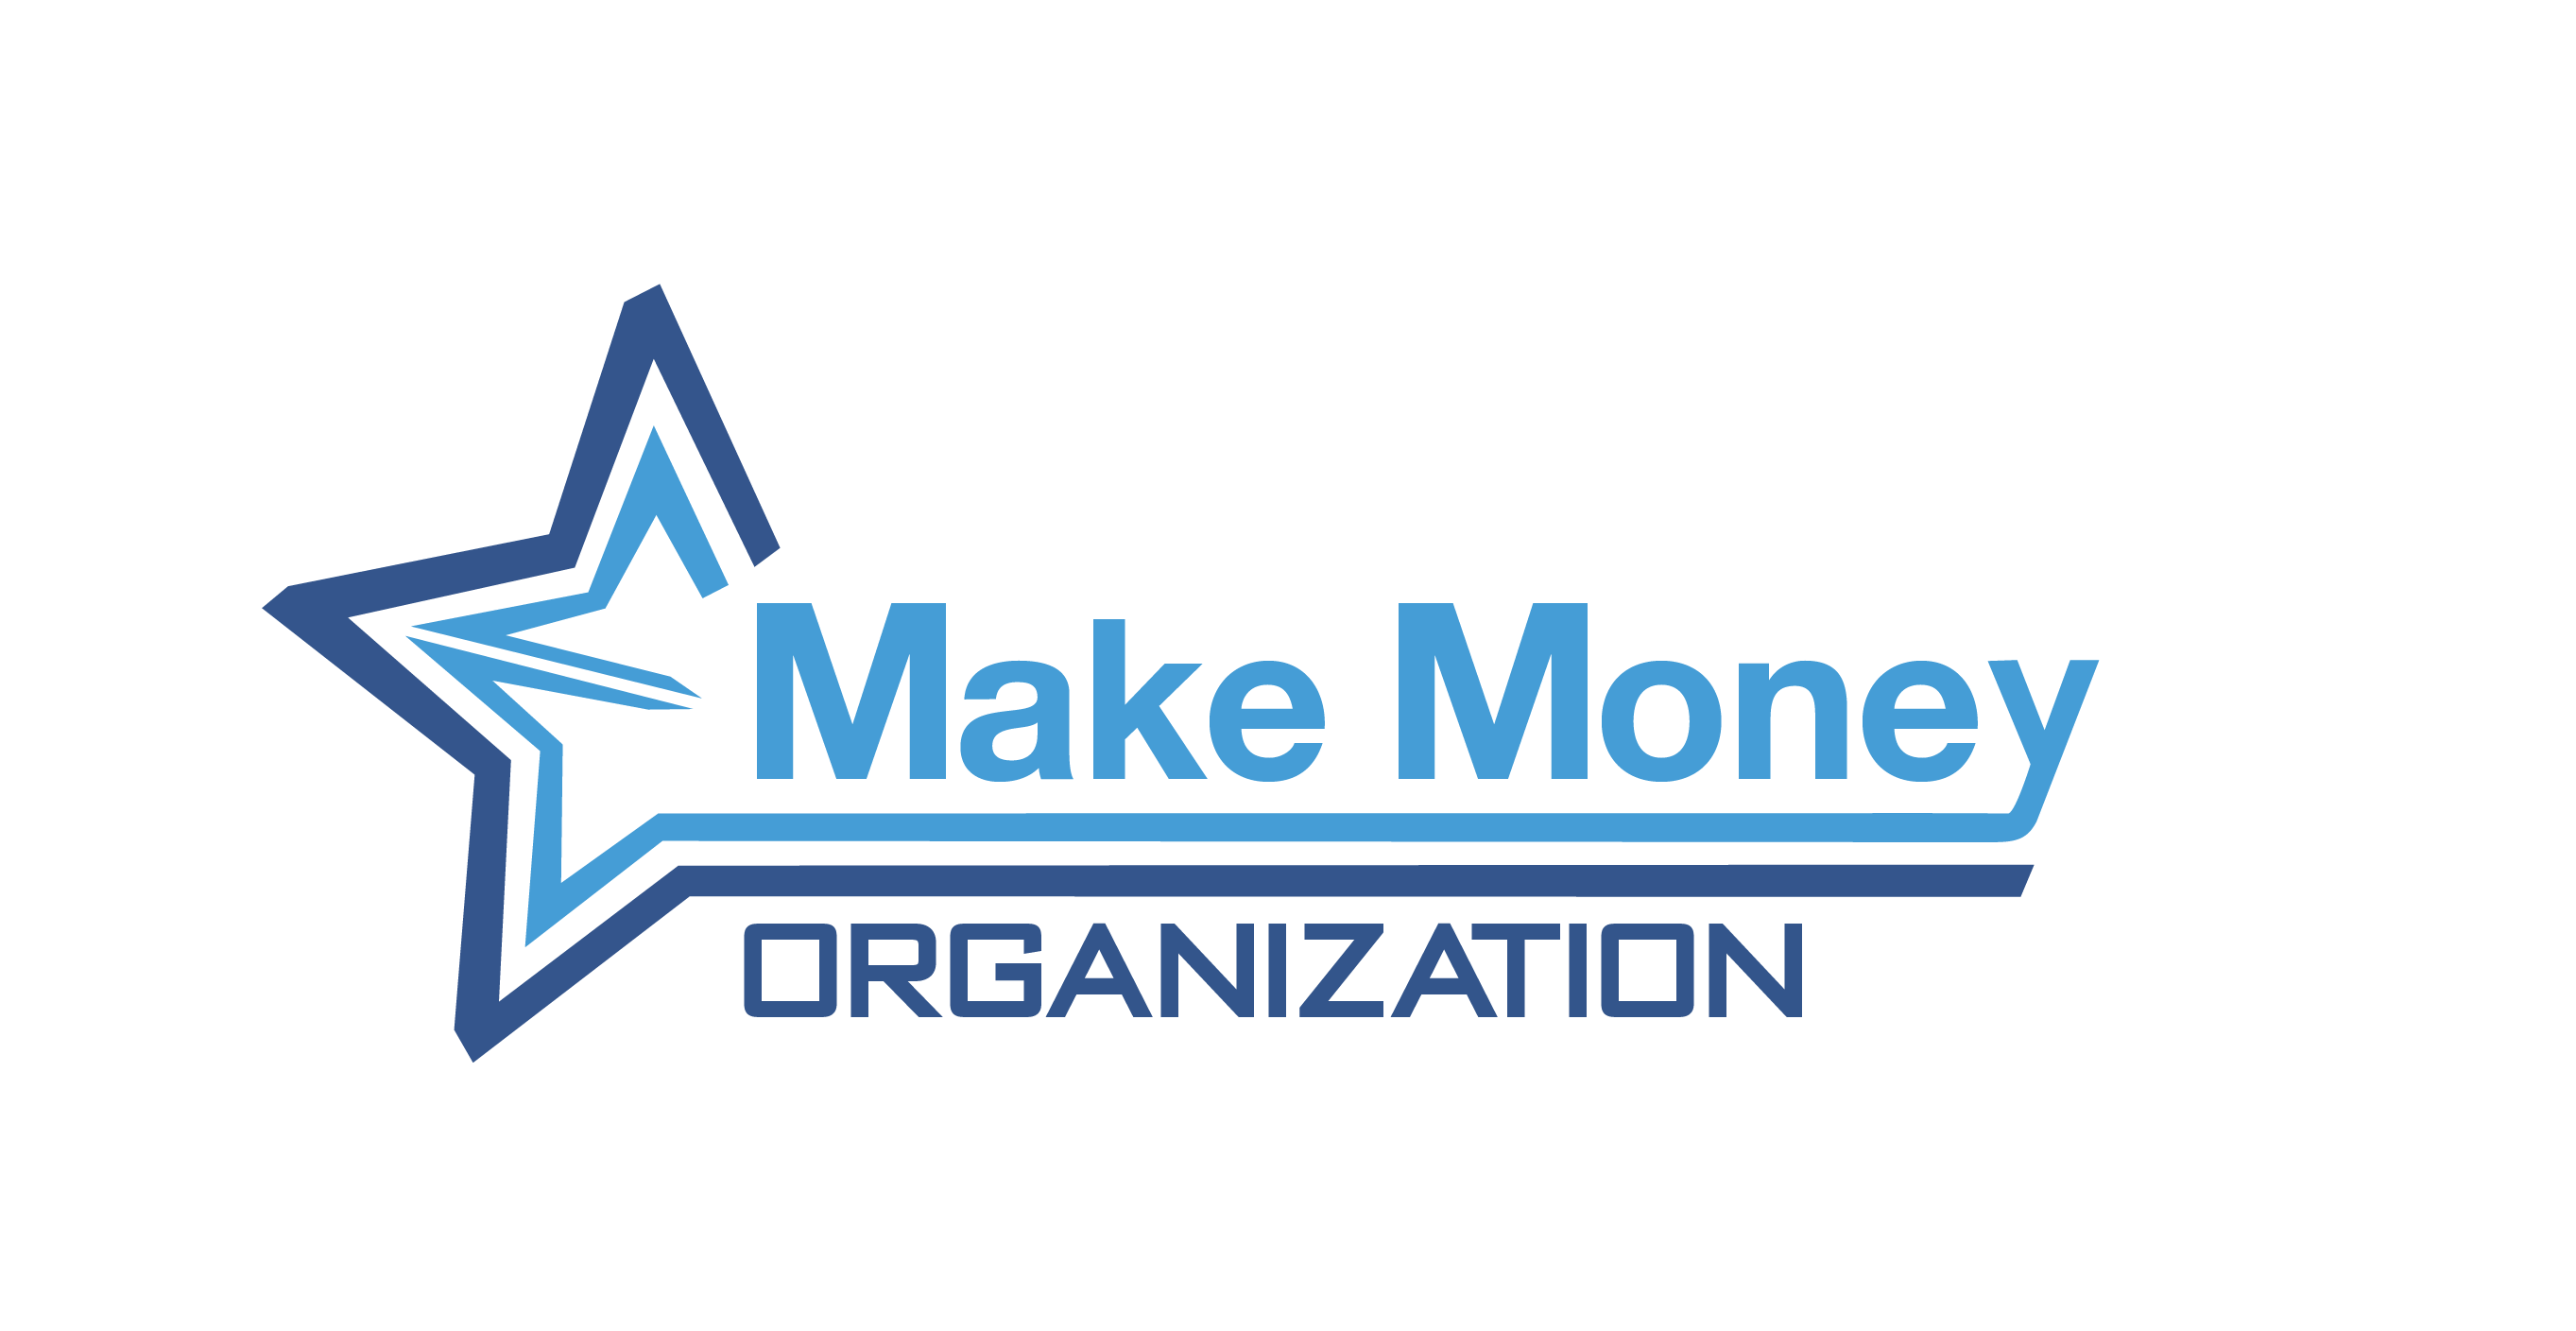 Make Money Organization